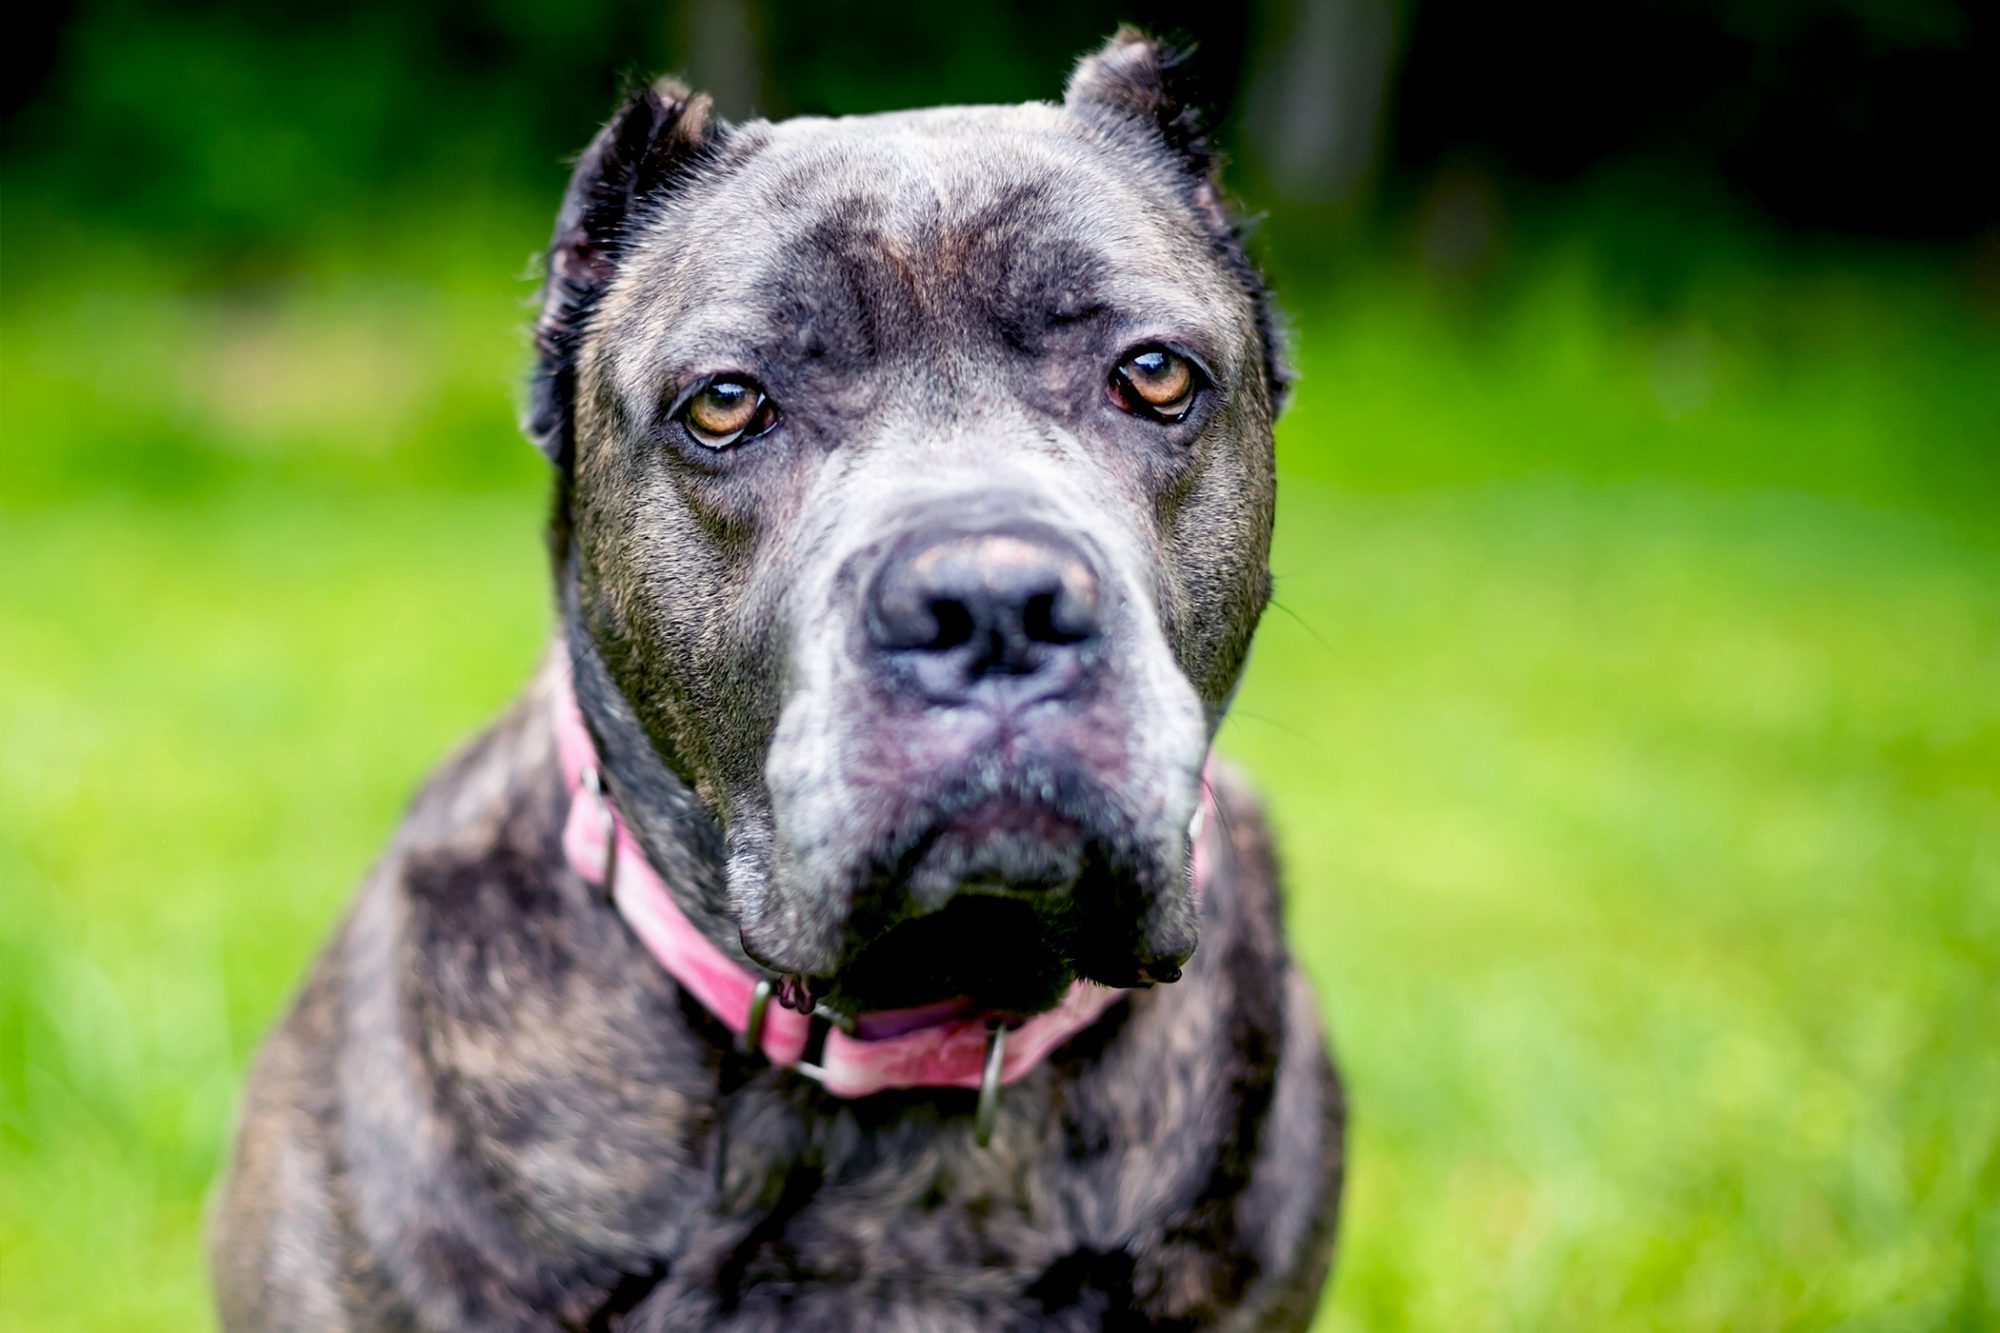 Adult cane corso wearing a pink collar portrait